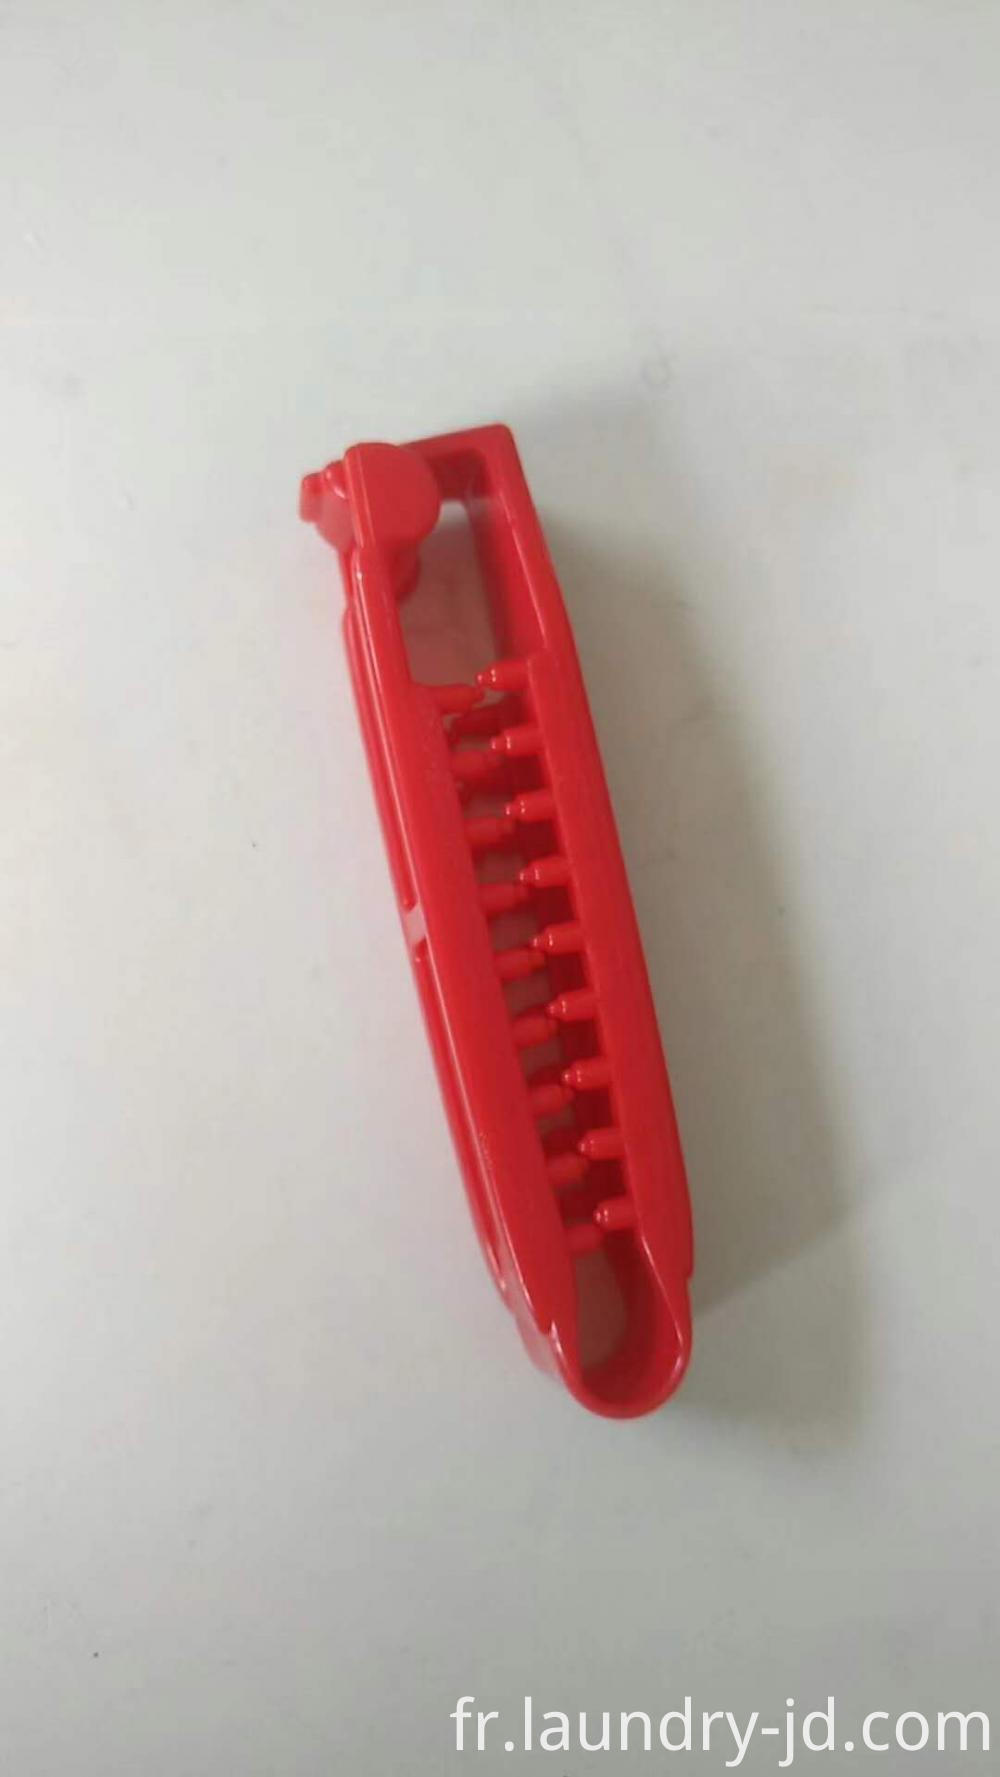 Plastic Cliiper For Laundry Items